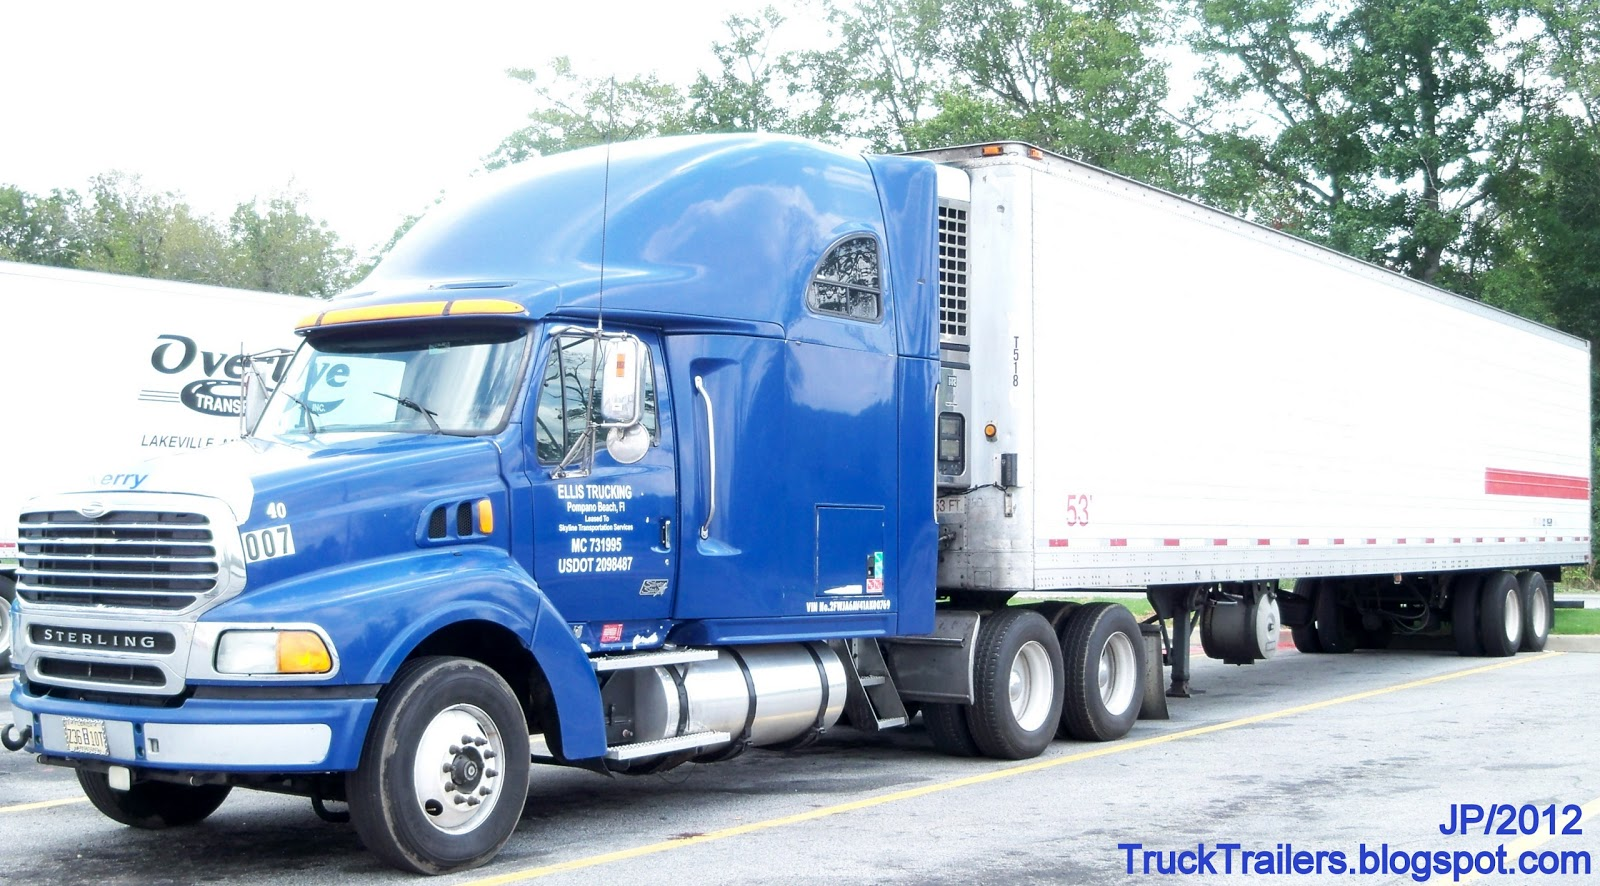 Ellis trucking pompano beach florida sterling sleeper cab truck 53 refrigerated trailer leased to skyline transportation services